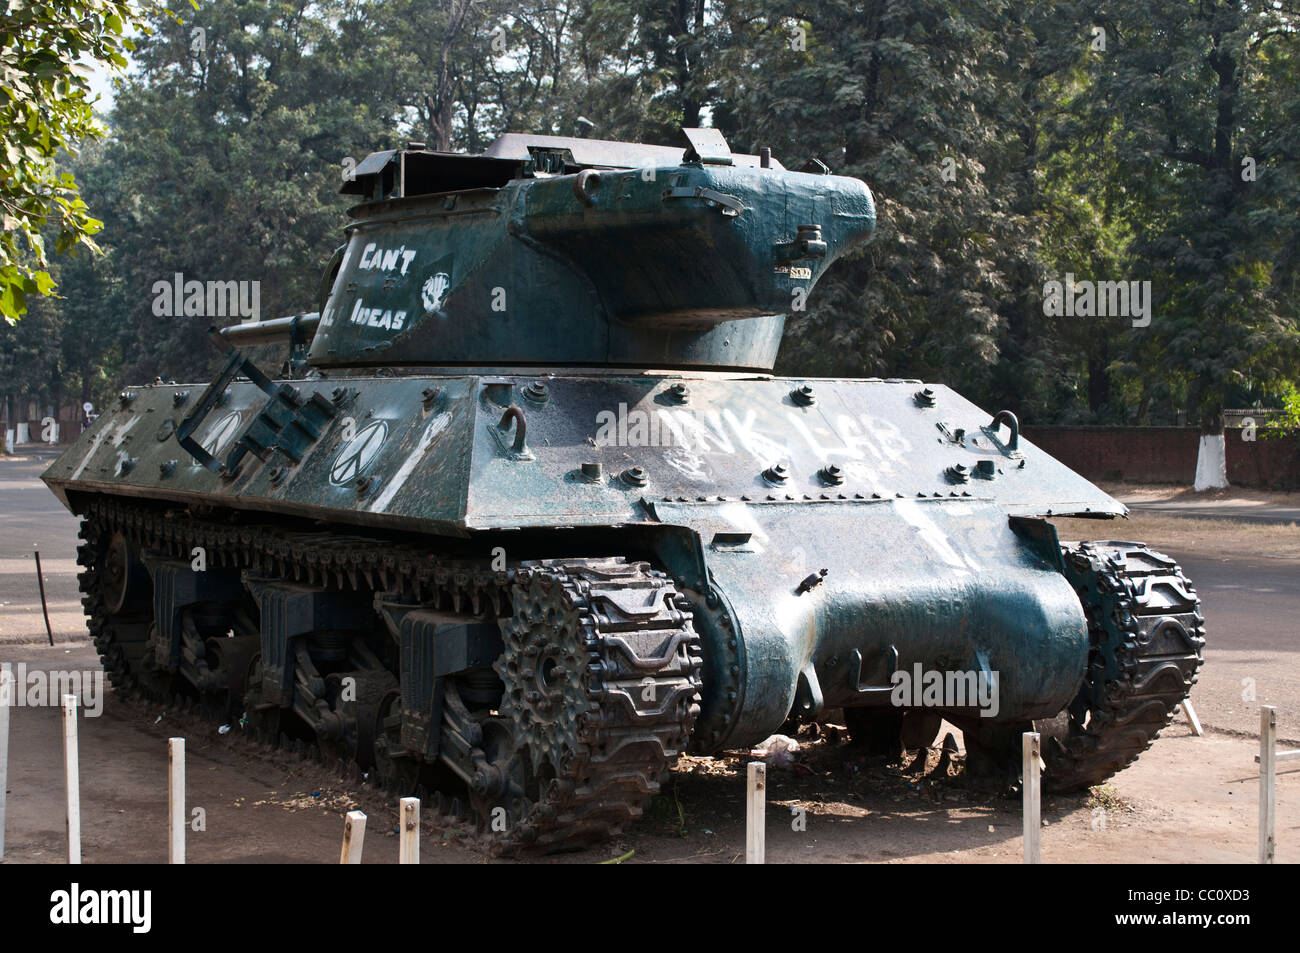 Captured Pakistani army tank in front of Museum and Art Gallery, Chandigarh, India - Stock Image